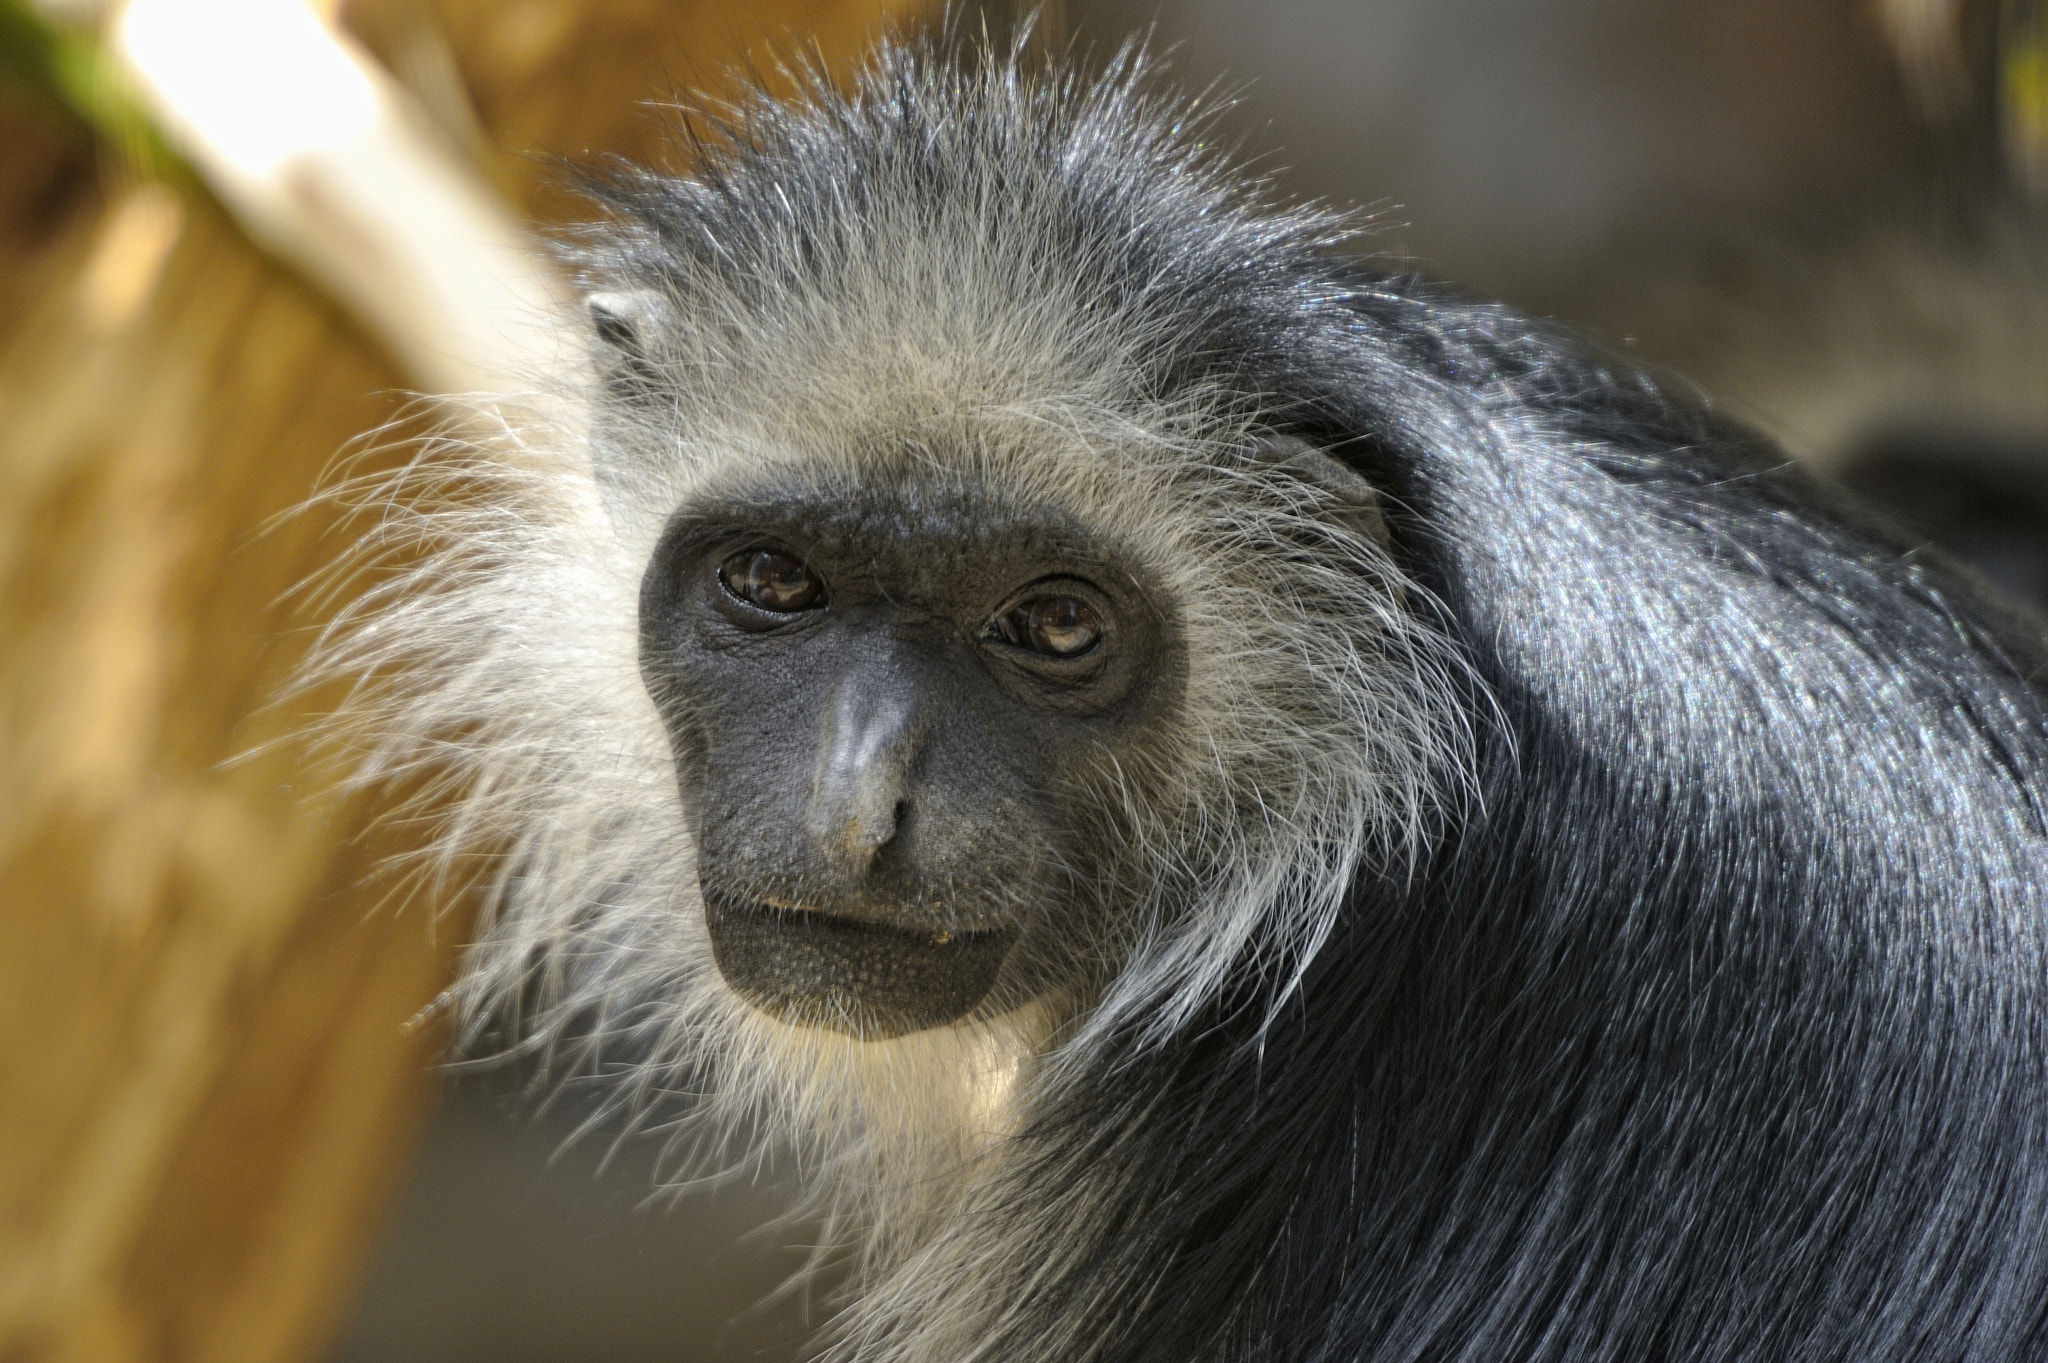 Photograph King Colobus Portrait by Josef Gelernter on 500px